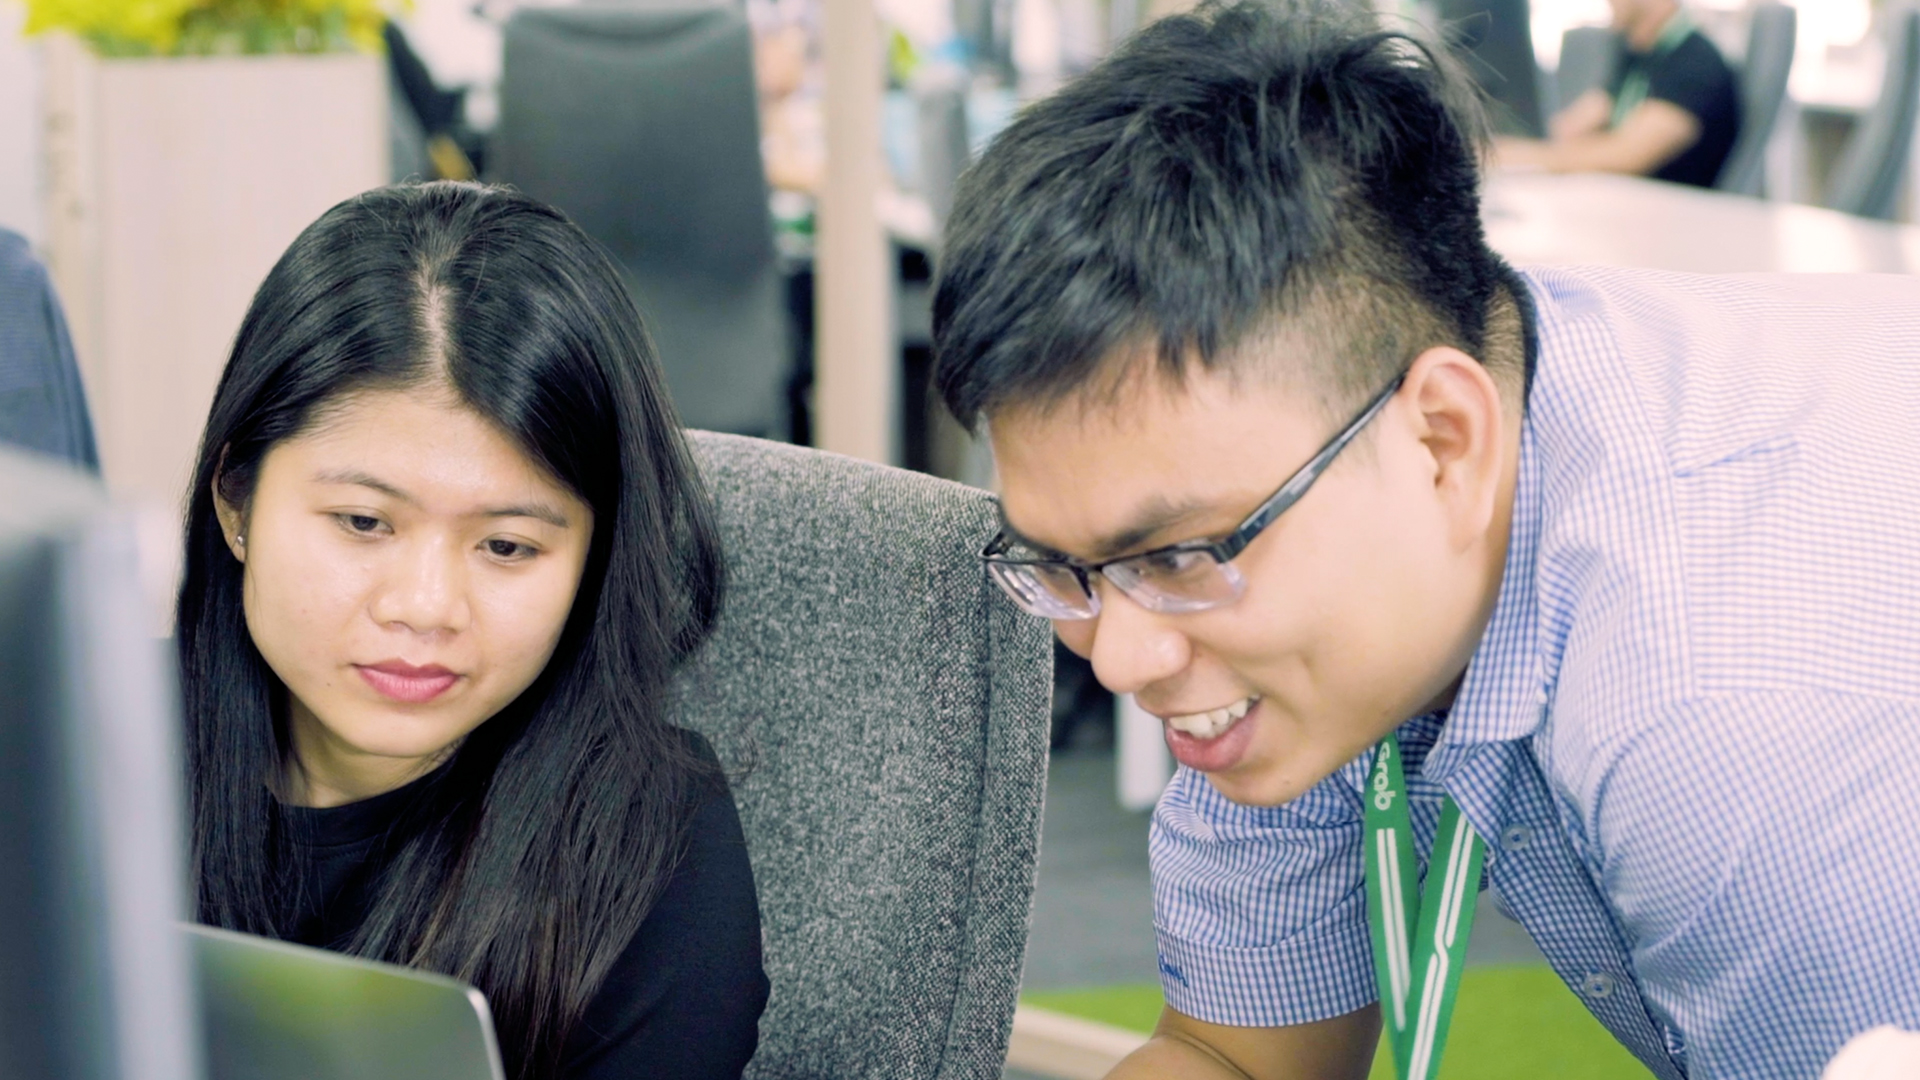 Inside Grab Vietnam's Office